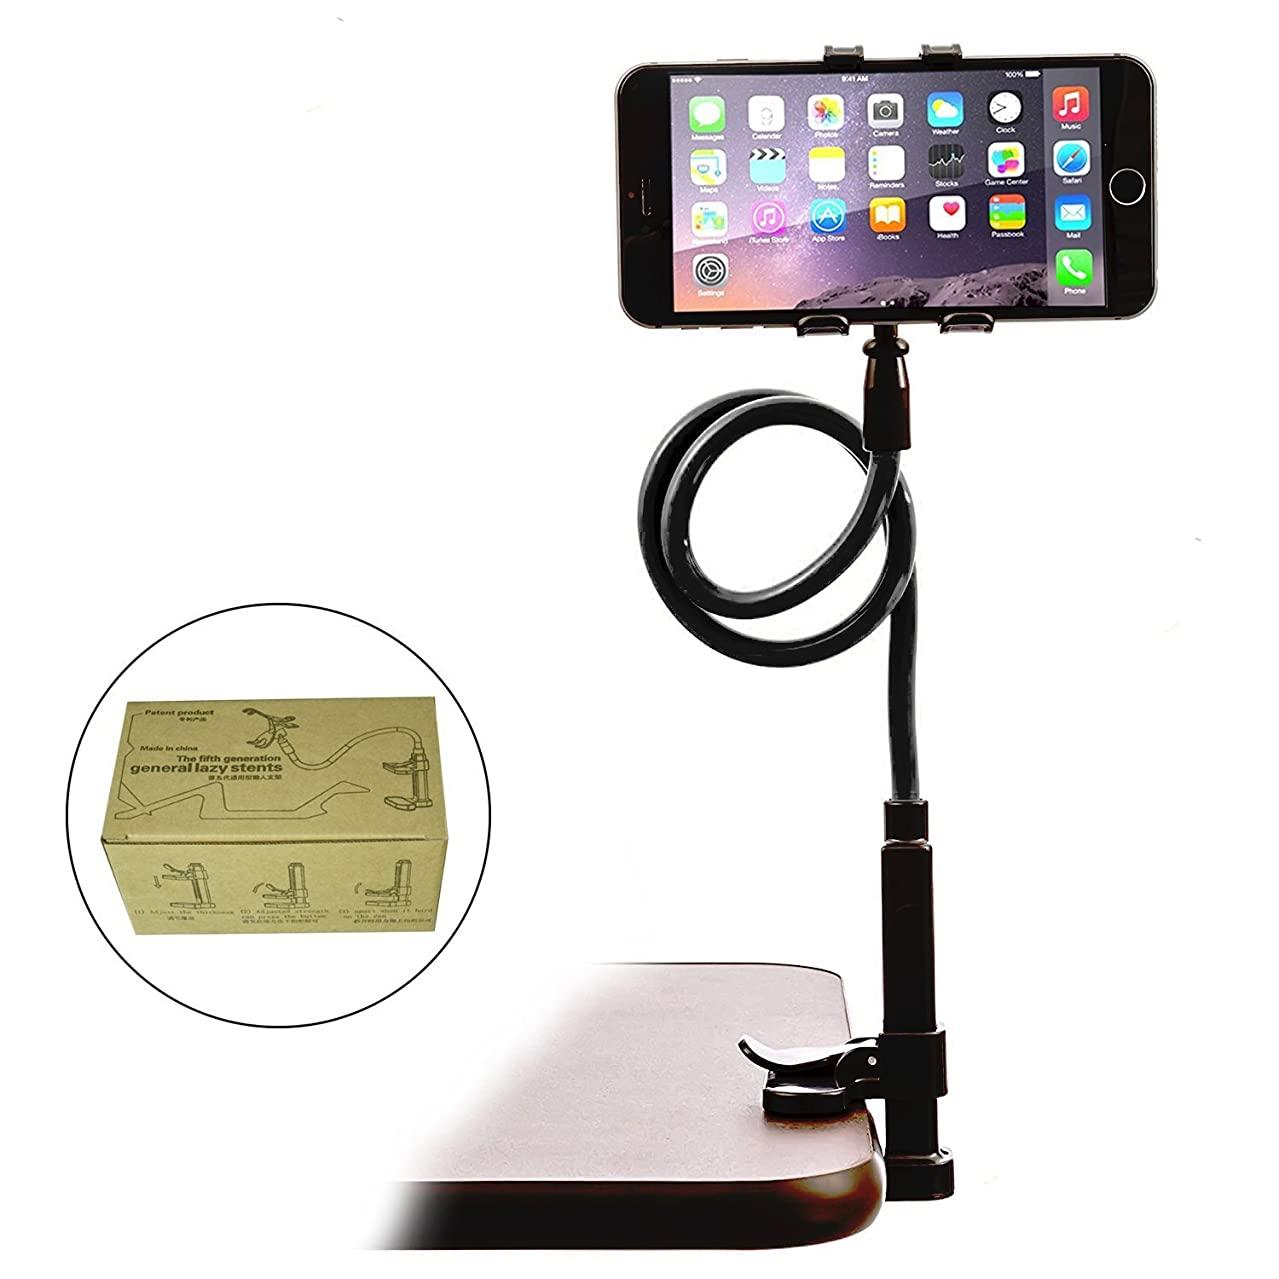 IHUIXINHE Mobile Phone Stand for Desk, Gooseneck Flexible Lazy Arm Bracket for Tablet iPad/iPhone X/8/7 Plus Samsung Note Galaxy S6/S7 Mount for Desktop Bedroom, Office, Bathroom, Kitchen (Size 1)